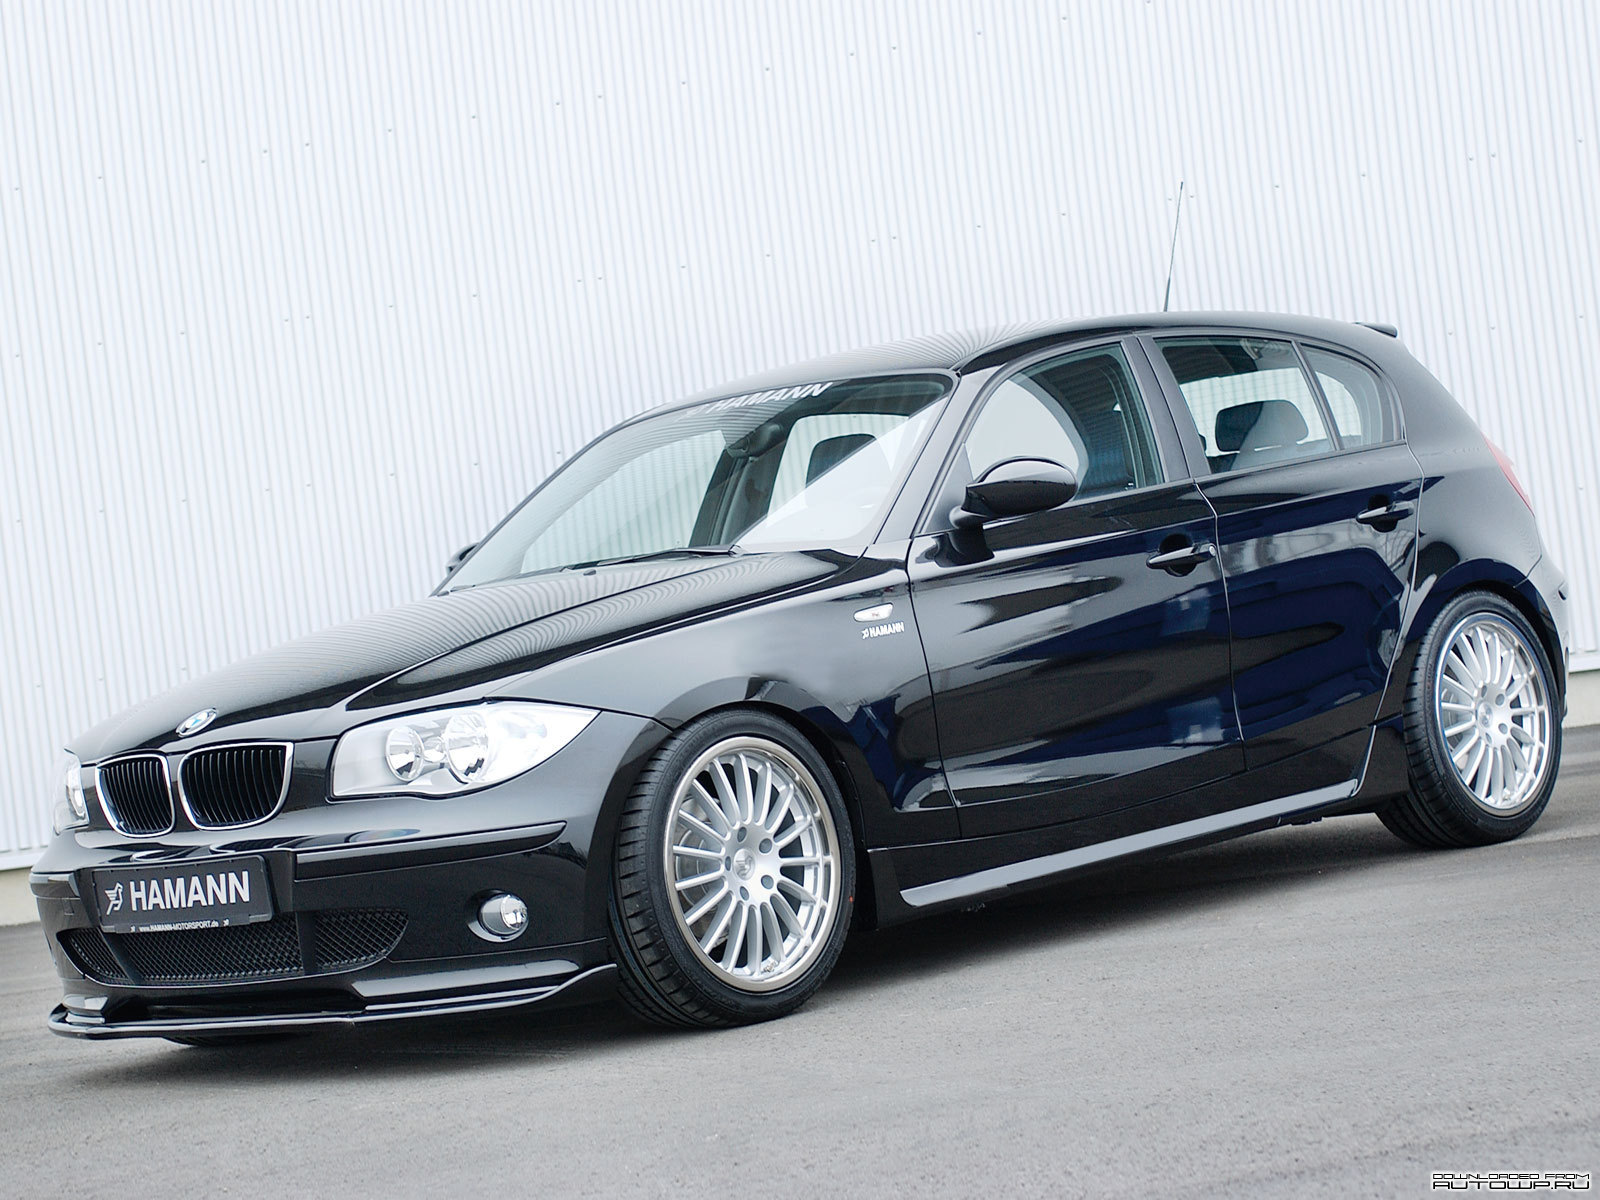 hamann bmw 1 series 5 door e87 photos photogallery. Black Bedroom Furniture Sets. Home Design Ideas